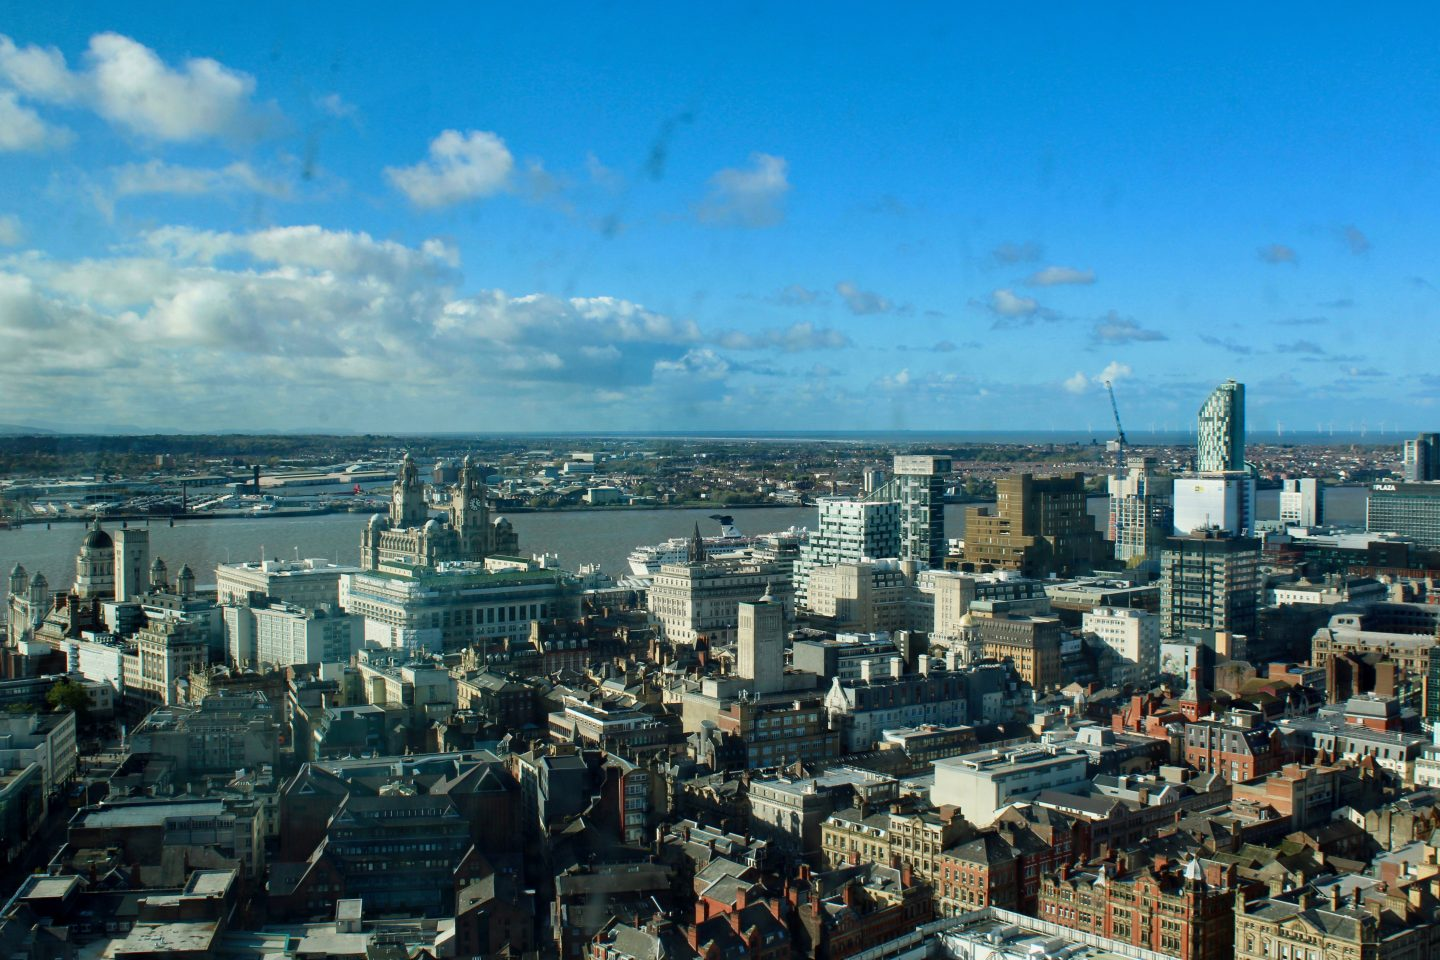 Best things to do in Liverpool: a view of the city from the radio tower, on a sunny day